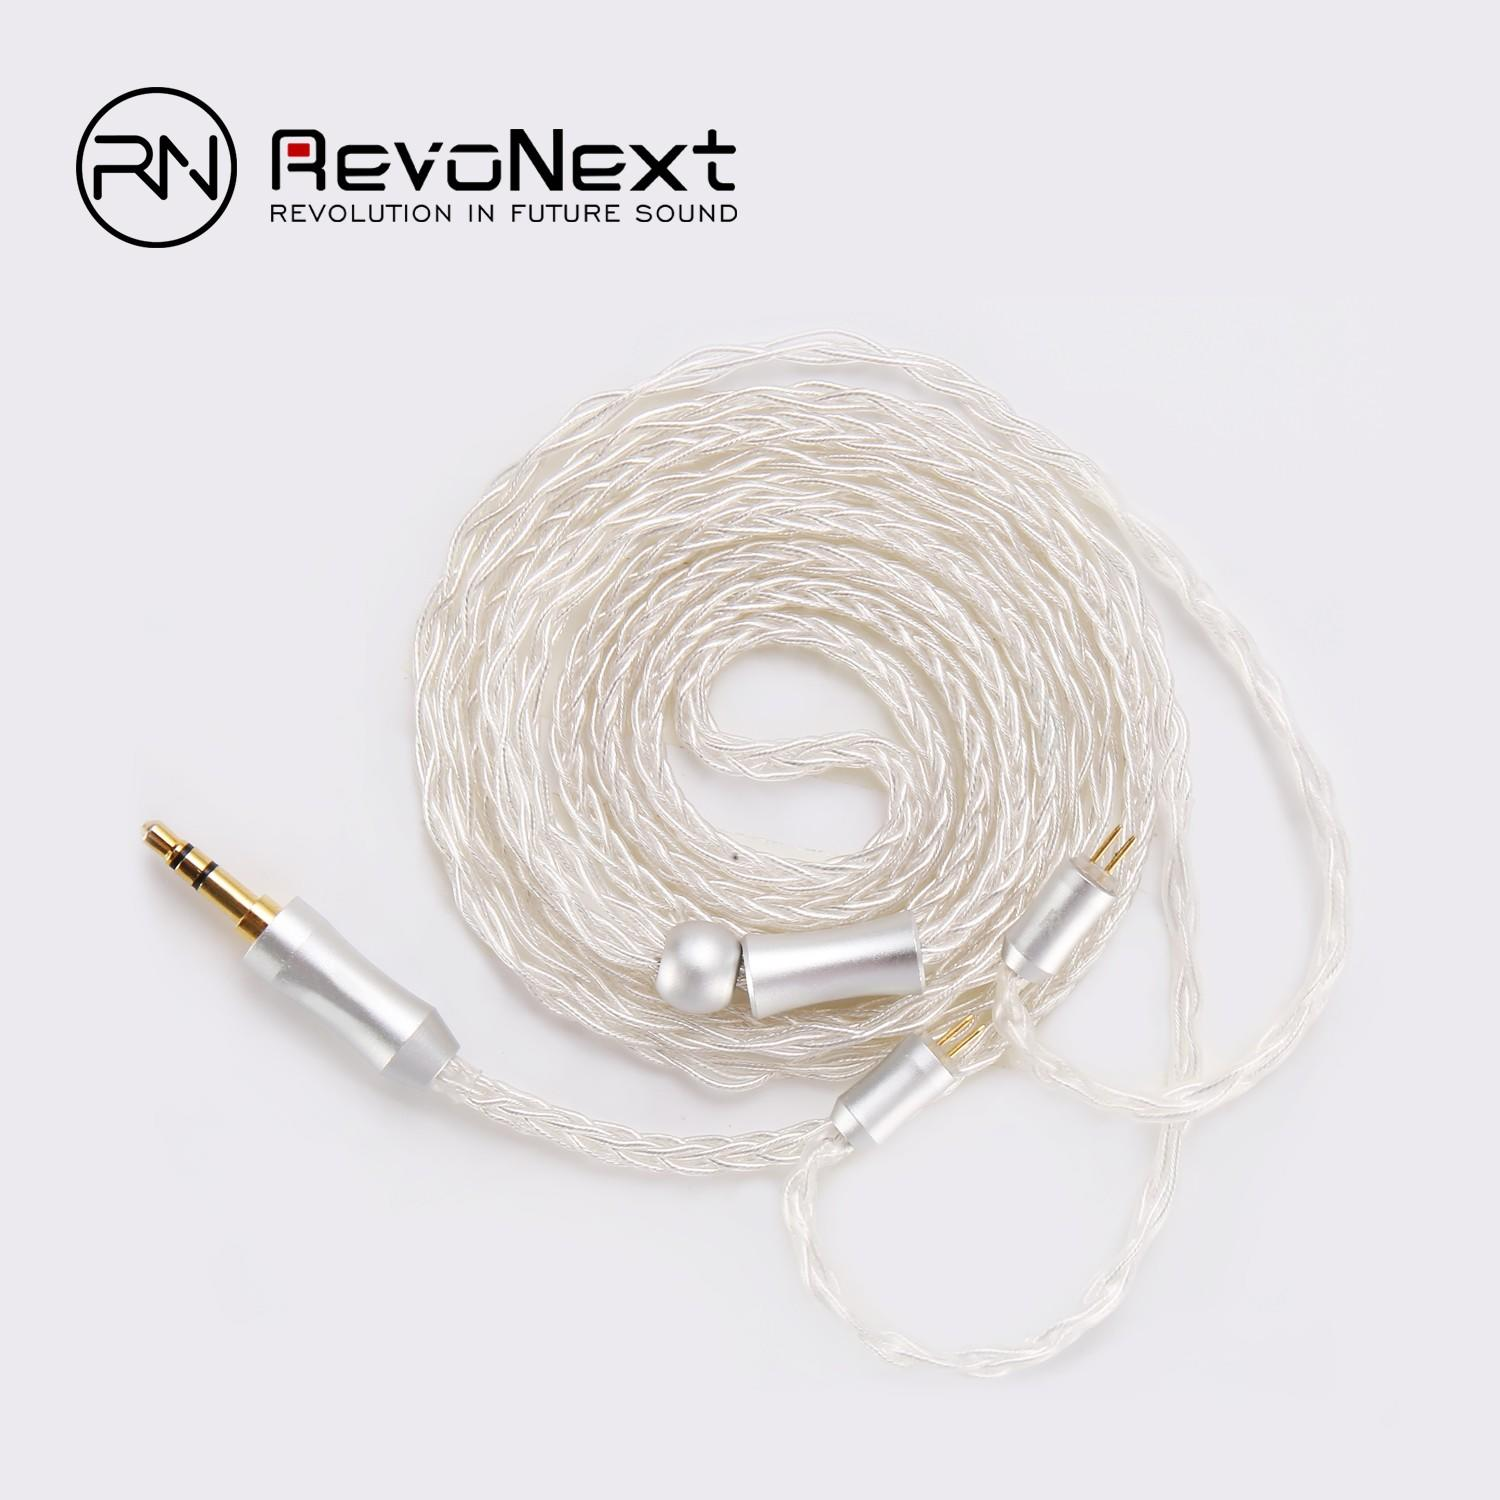 RevoNext customized high end headphone cables directly sale for hifi